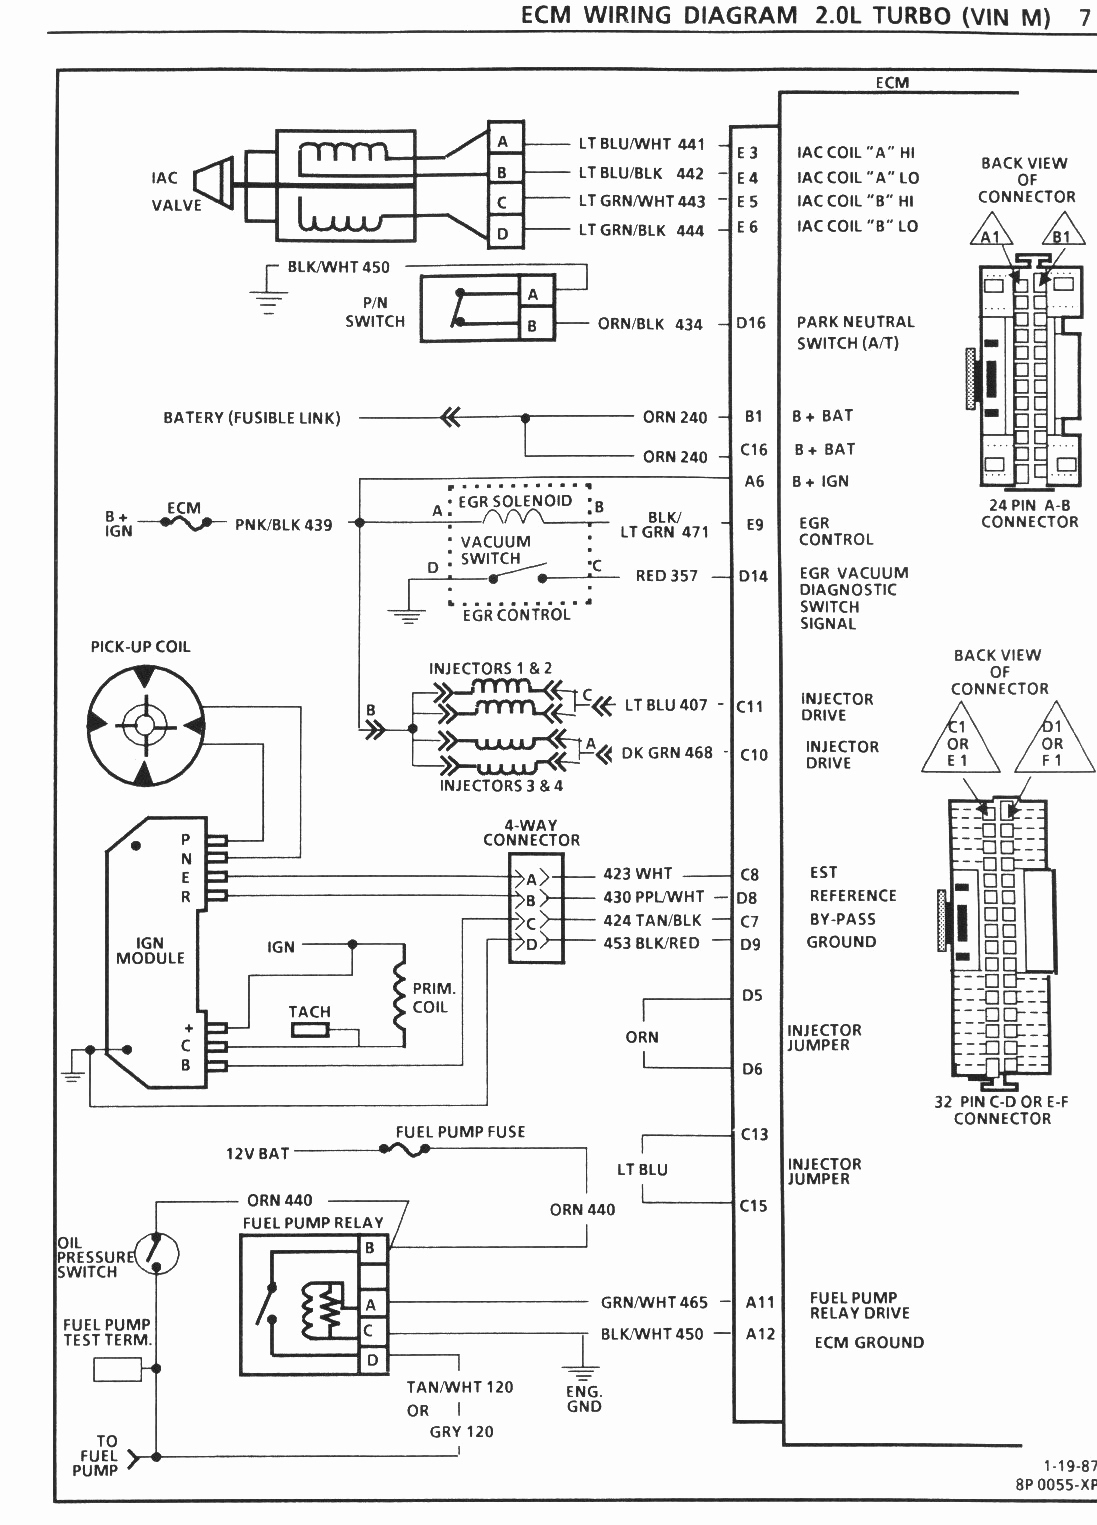 Ground Wires Diagram Ddec V - Wiring Diagram Features on